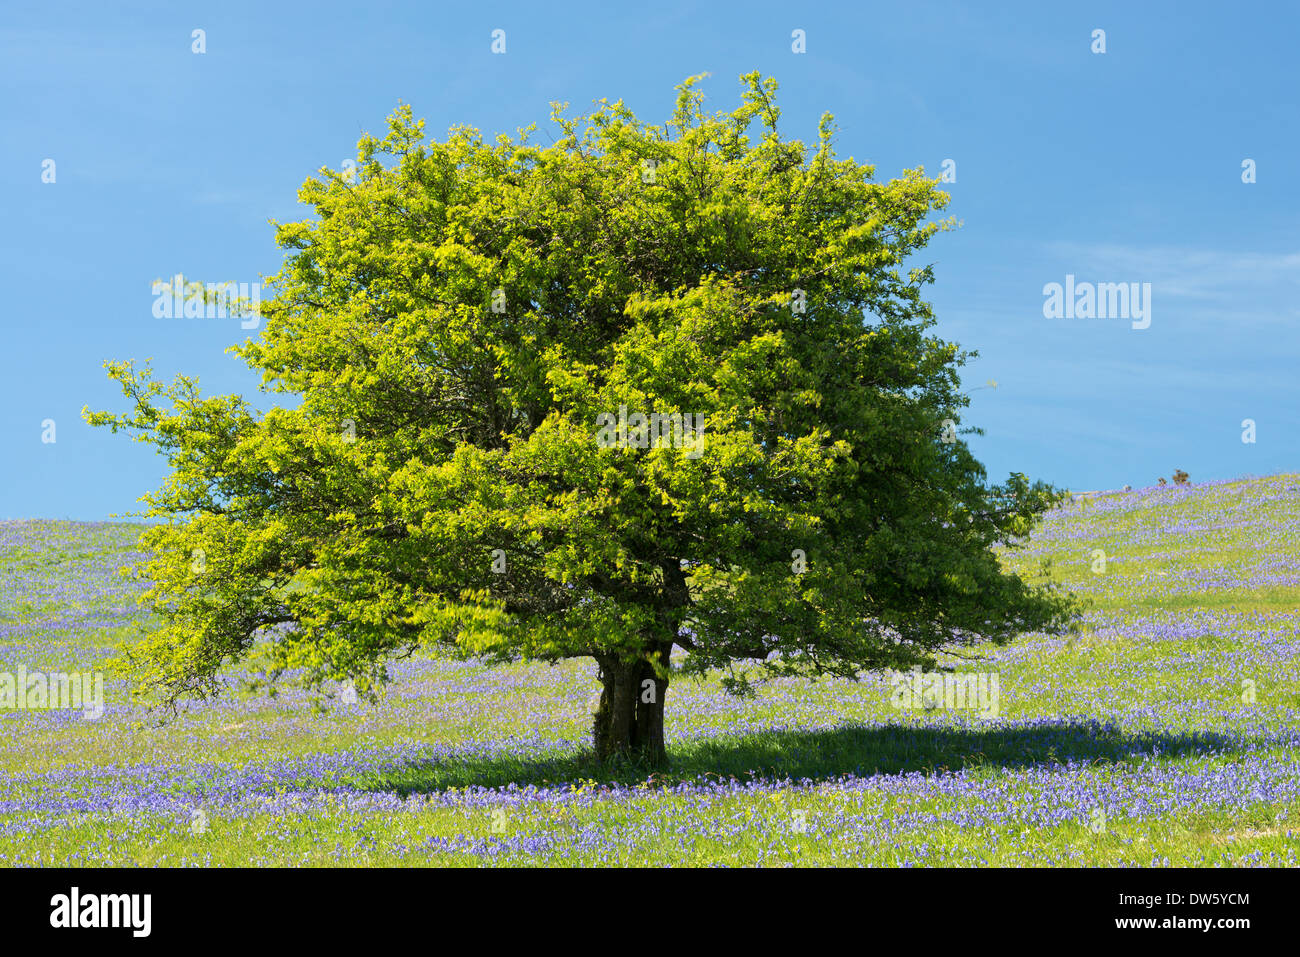 Hawthorn tree and Bluebells flowering on Holwell Lawn, Dartmoor, Devon, England. Spring (June) 2013. - Stock Image